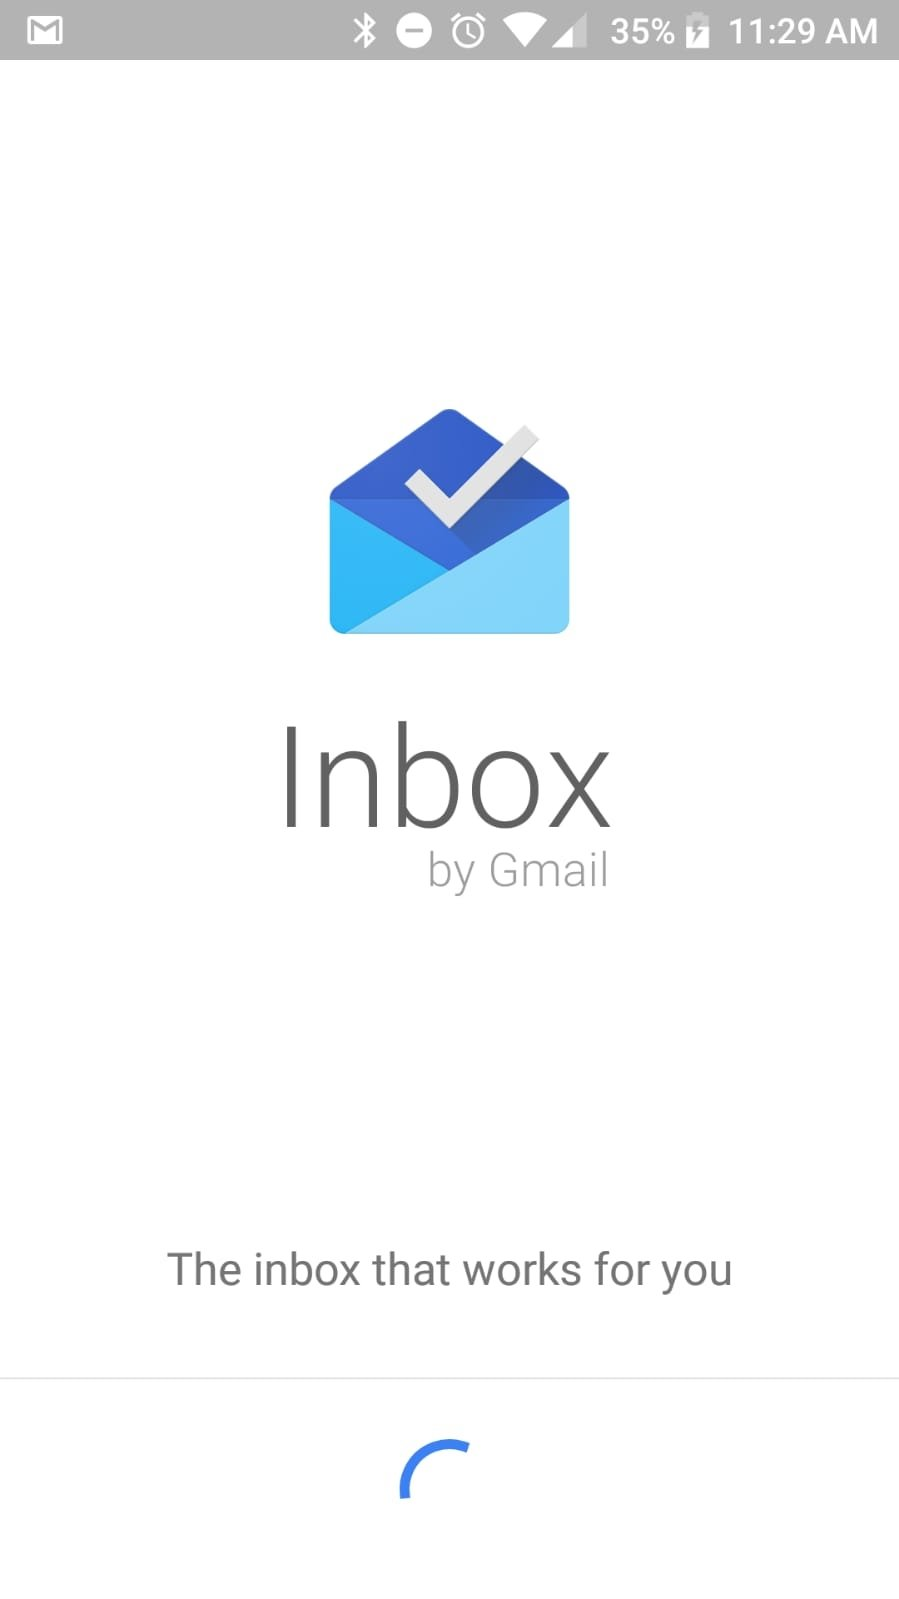 Inbox Android image 5